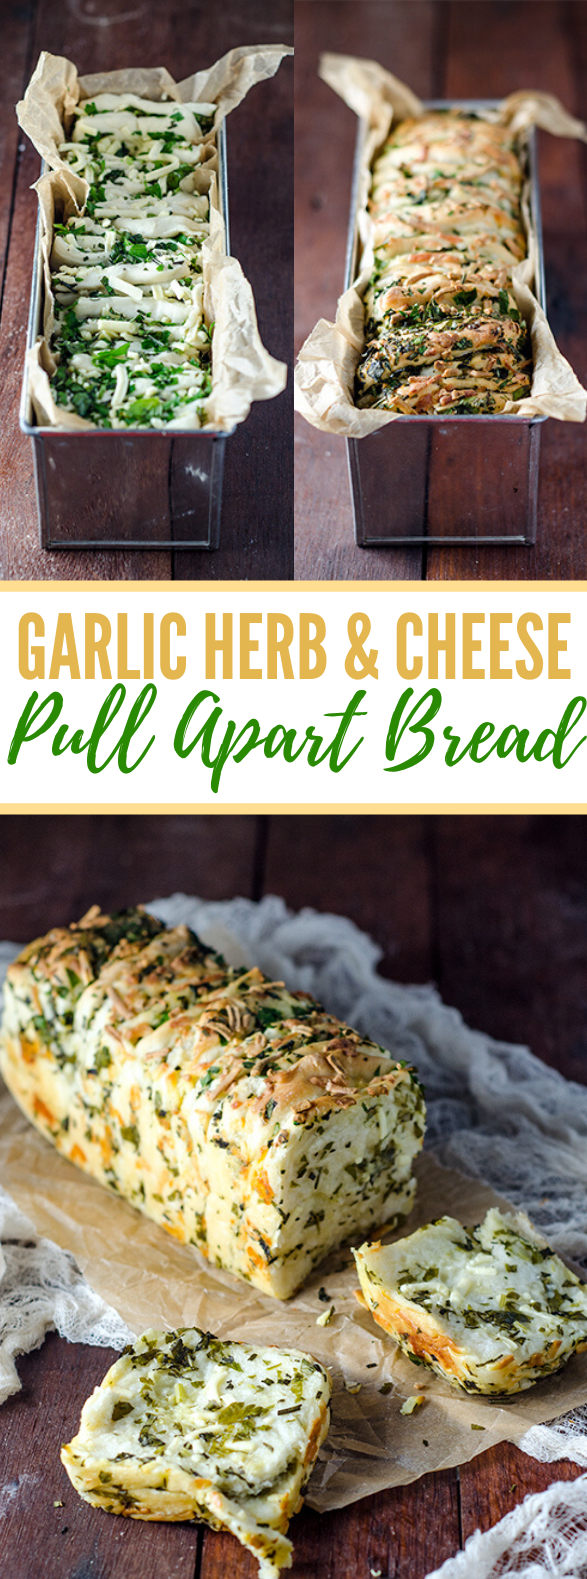 GARLIC HERB AND CHEESE PULL APART BREAD #vegetarian #healthyrecipes